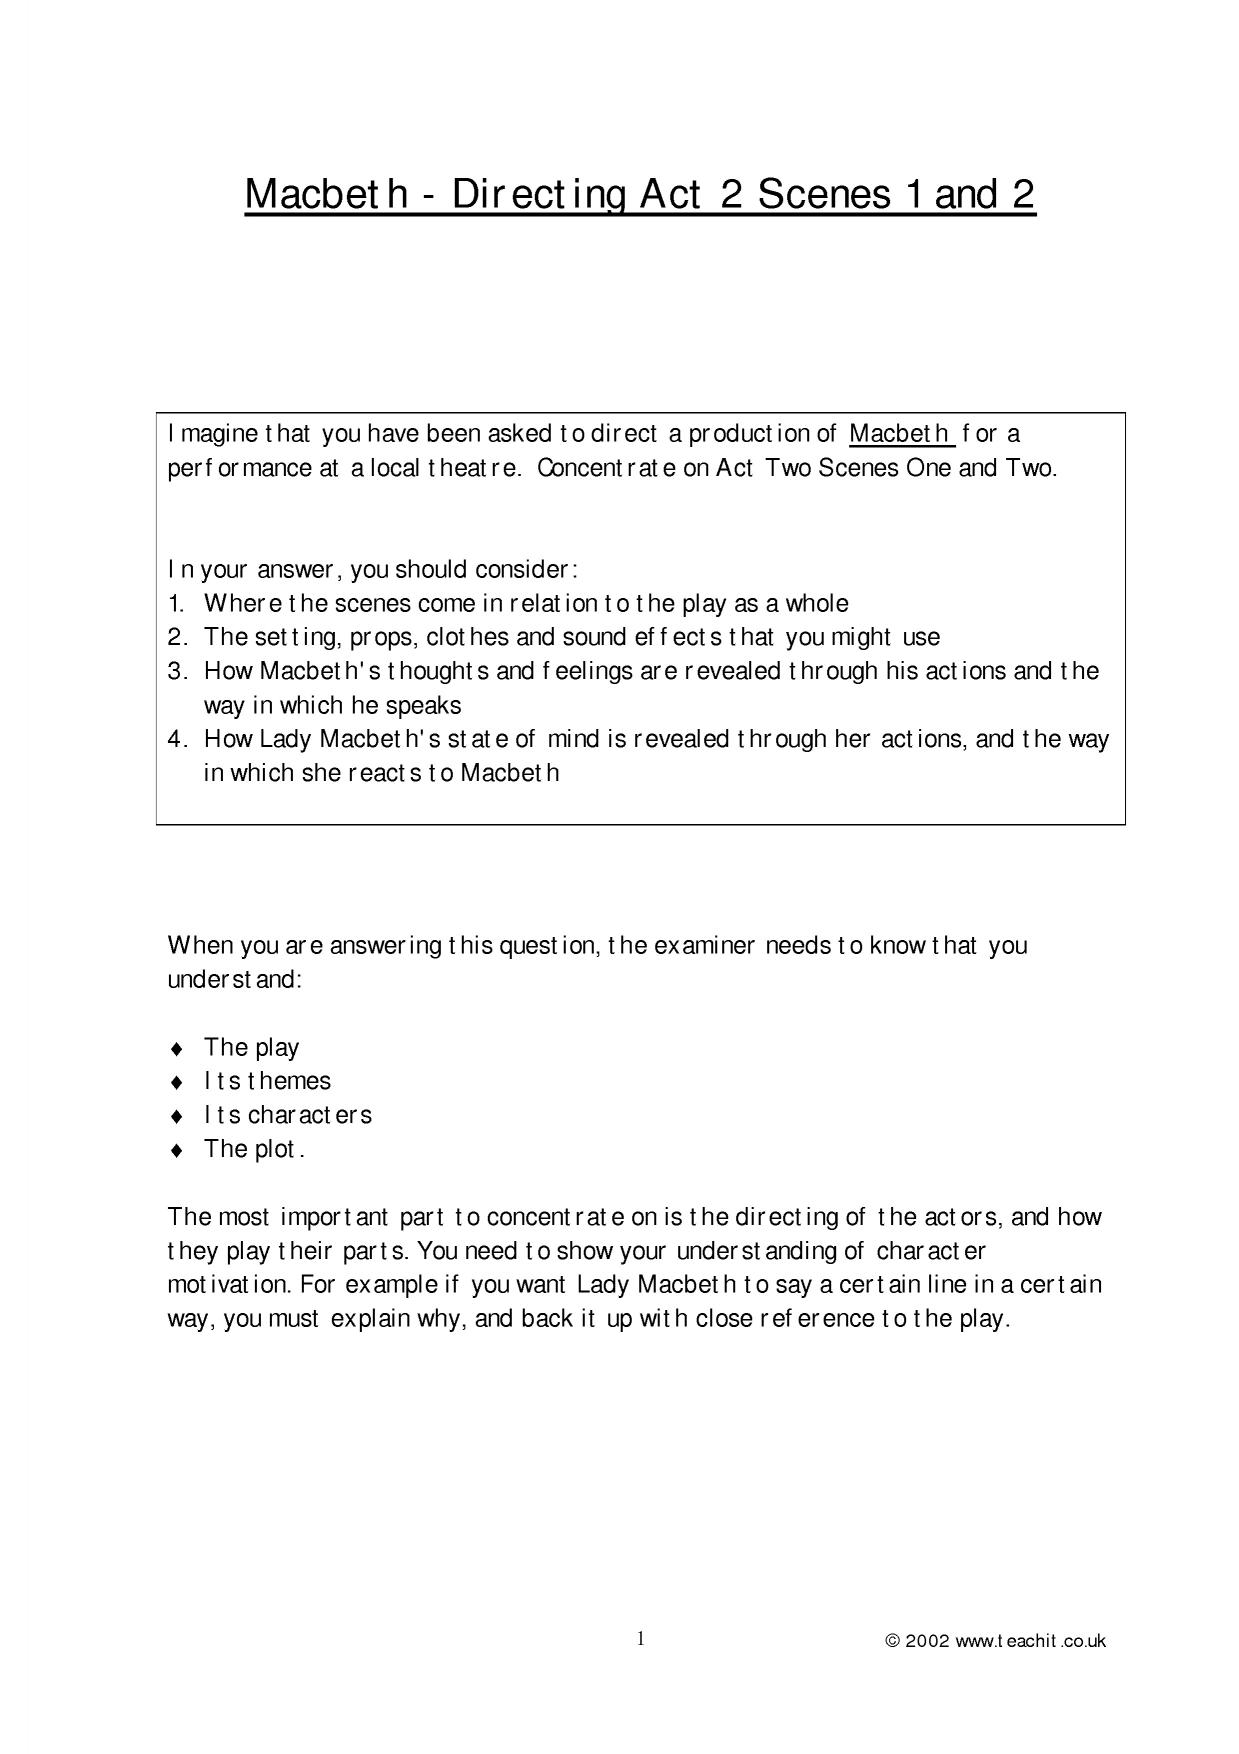 macbeth essay examples essay intro template essay essay examples  relationship between macbeth and lady macbeth essay plan 91 121 relationship between macbeth and lady macbeth